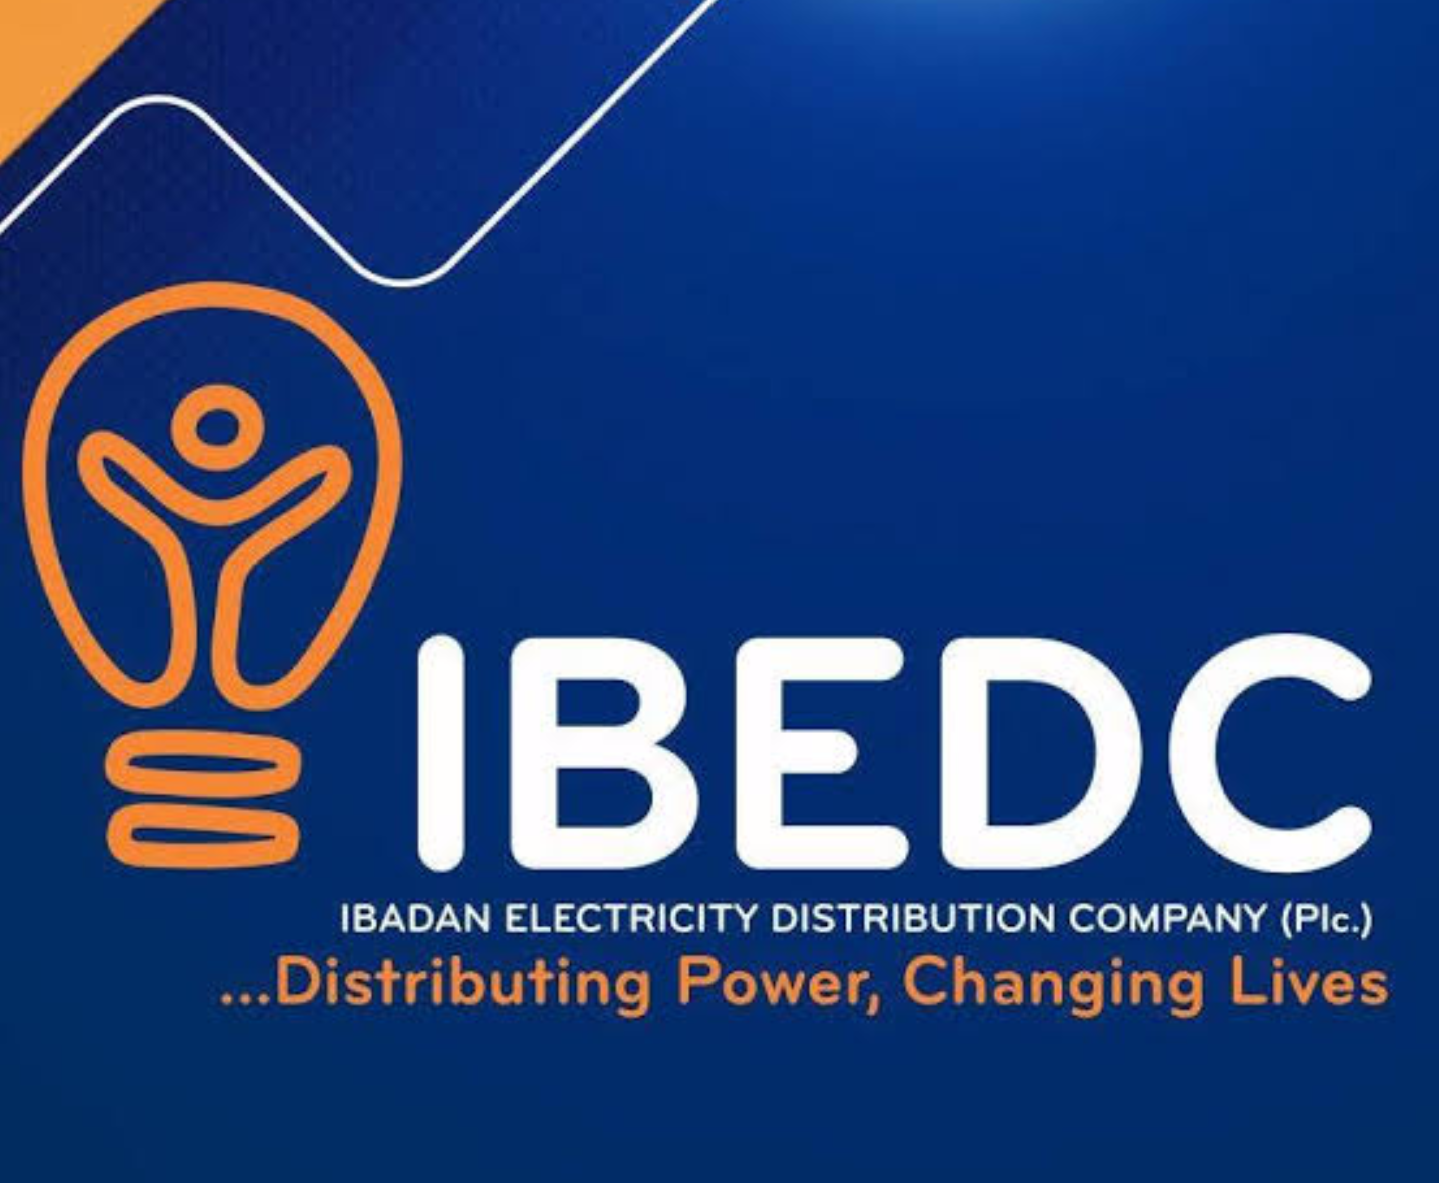 IBEDC to restore electricity supply to Ilesha